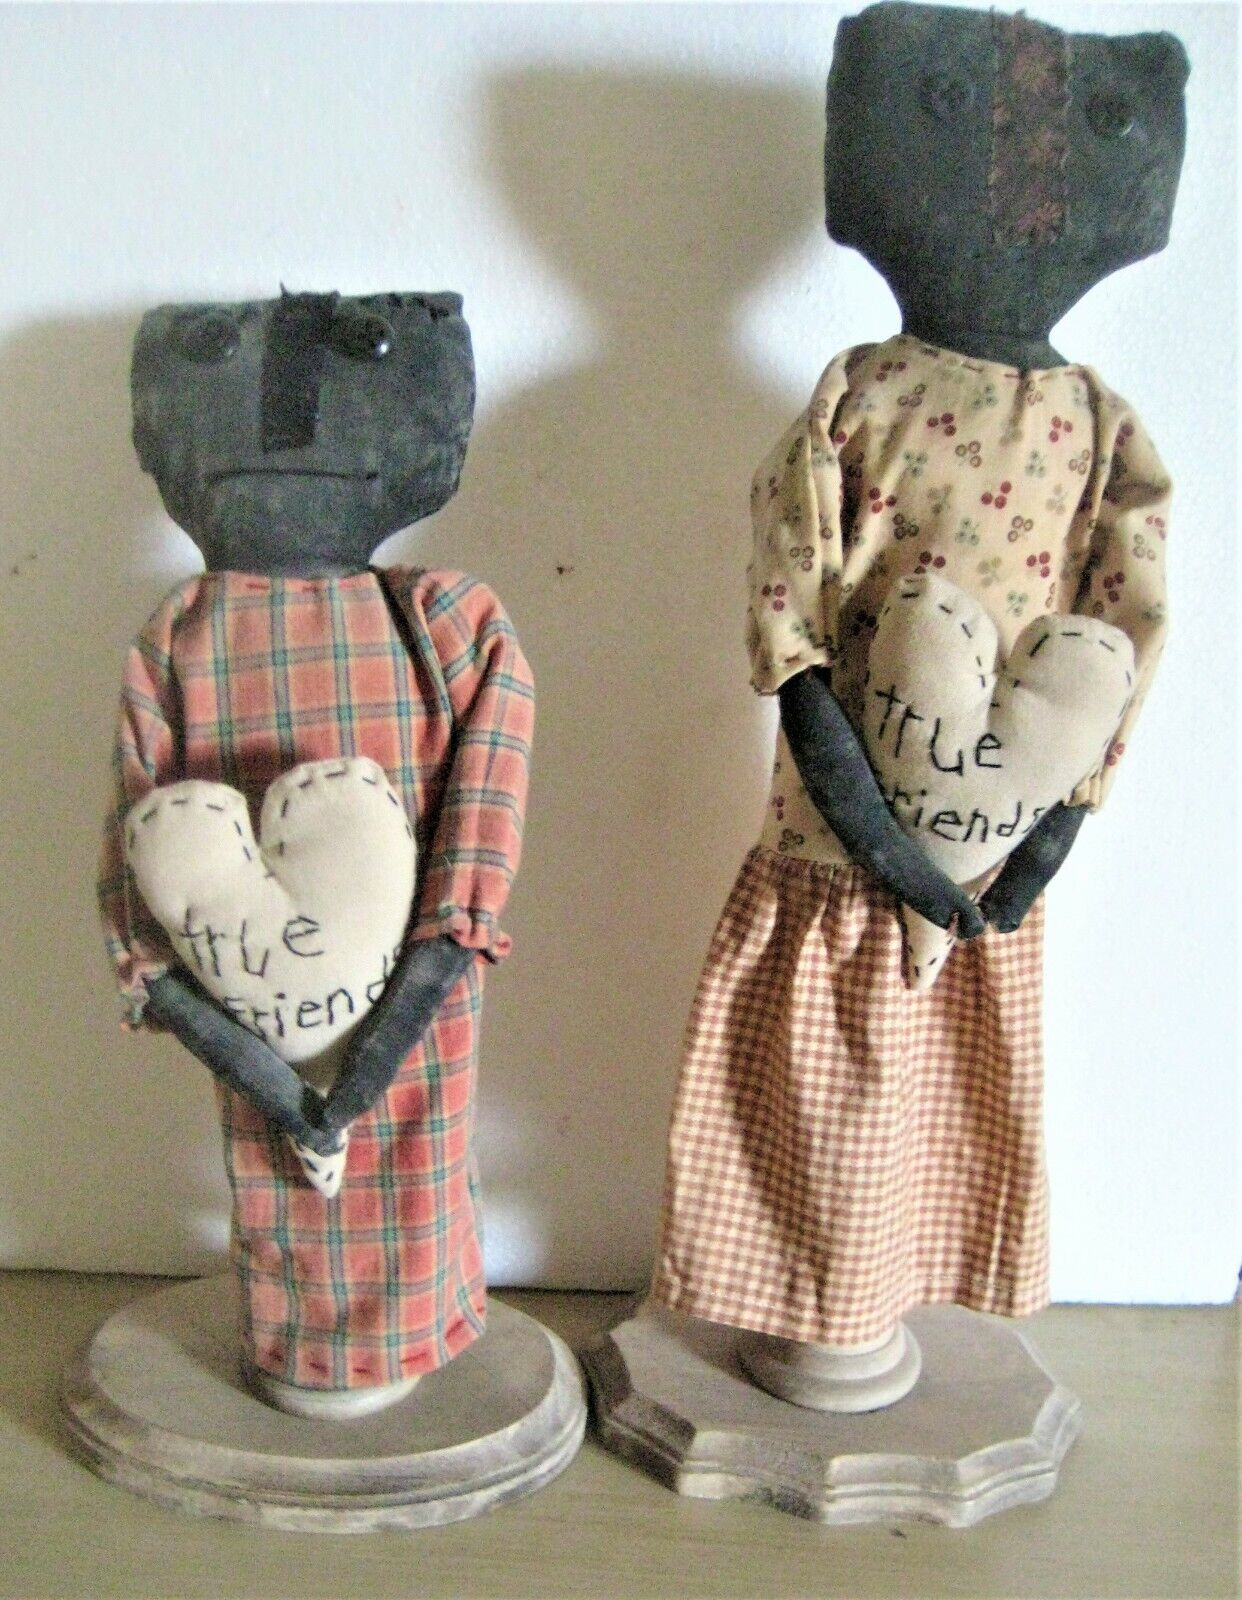 Outsider Art - A Pair Of One-of-a-Kind Fabric Doll Constructions - $45.00